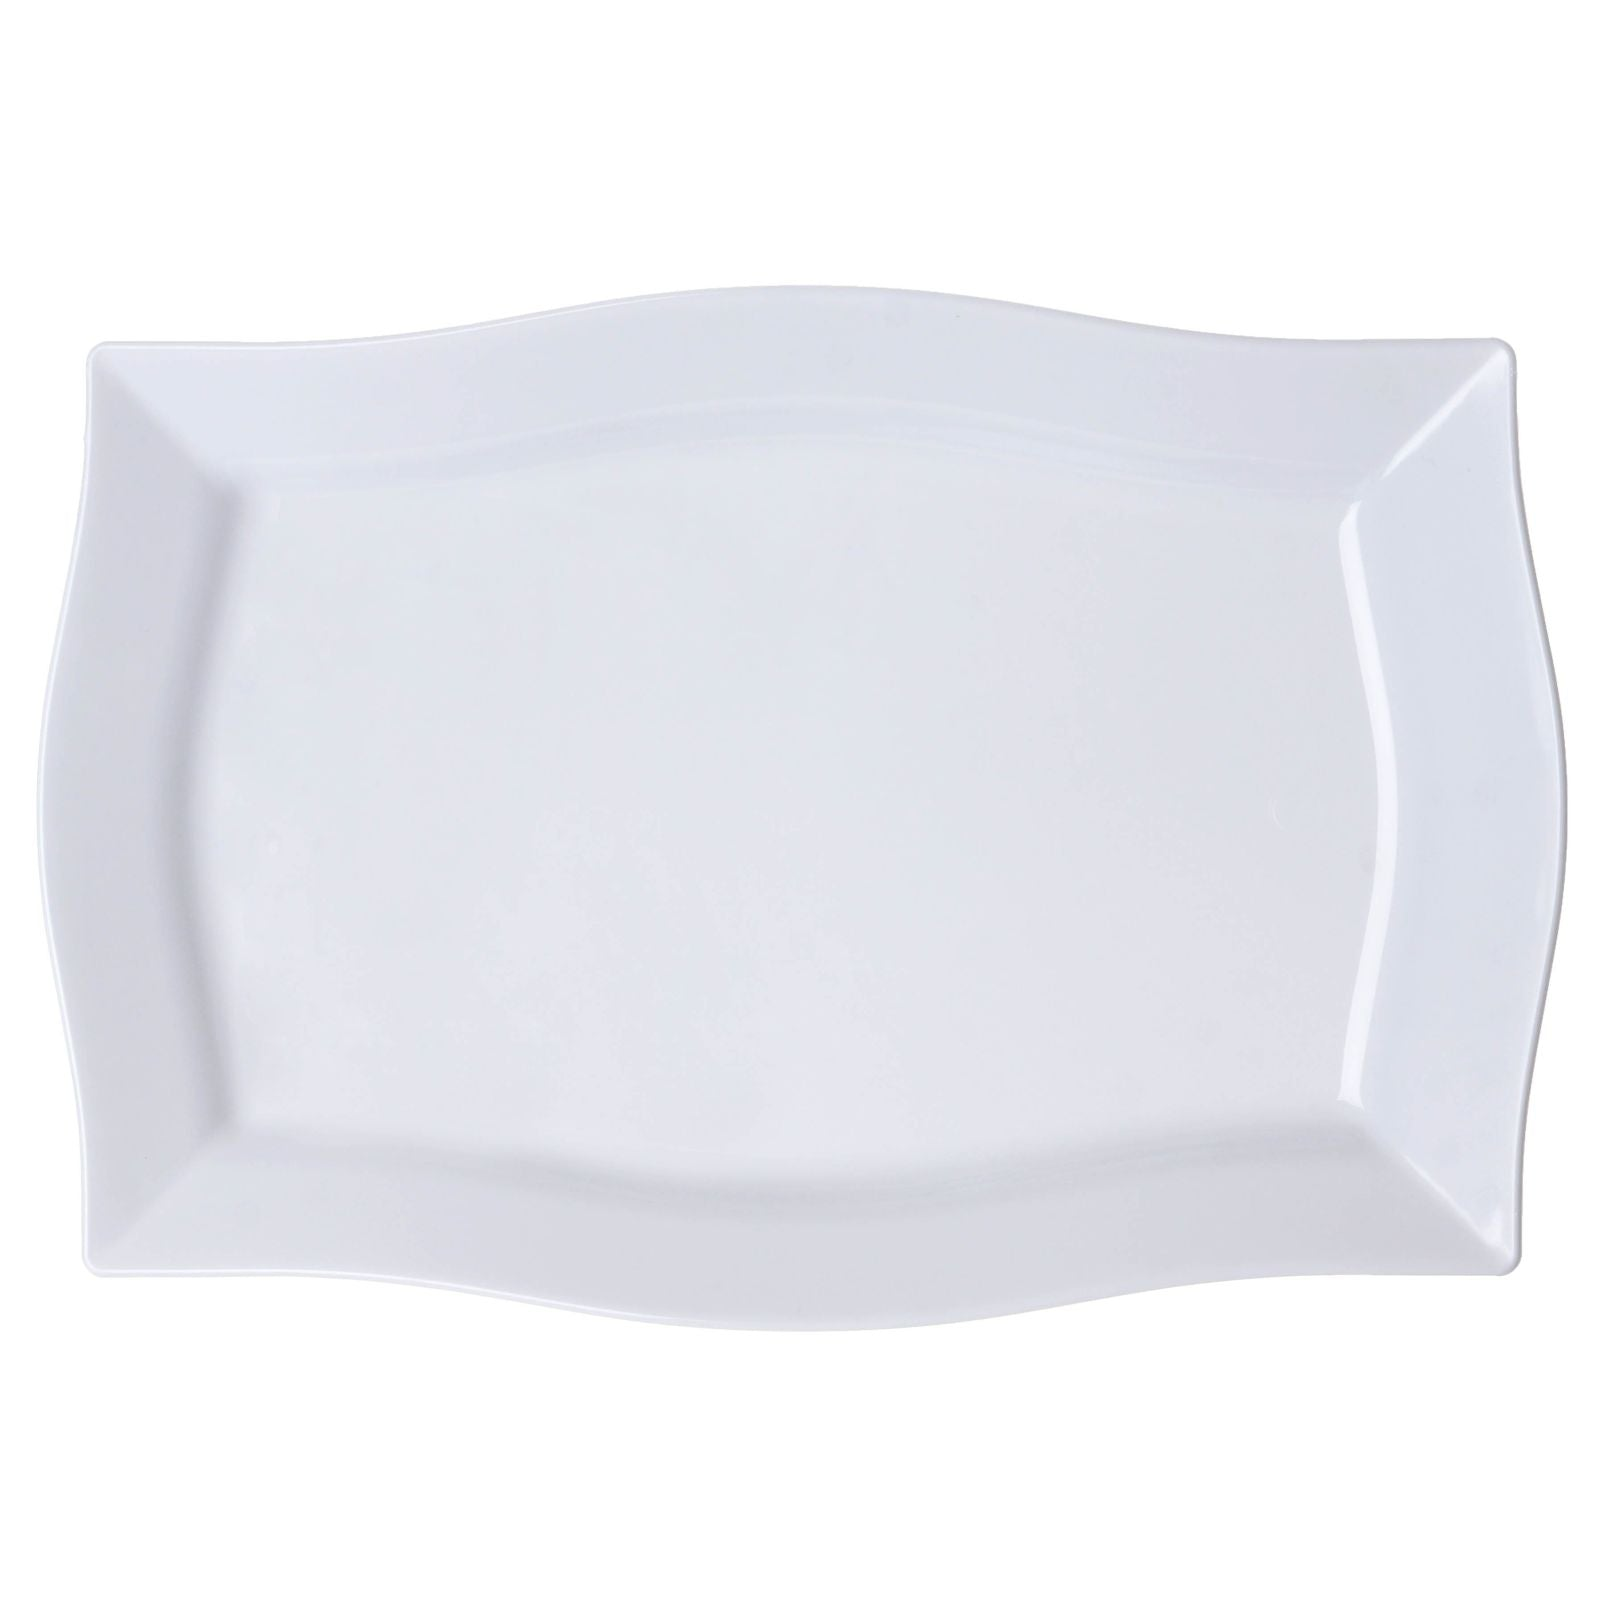 10 Pack 12  White Disposable Rectangular Serving Plates With Wave Trimmed Rim  sc 1 st  eFavormart.com & 10 Pack 12